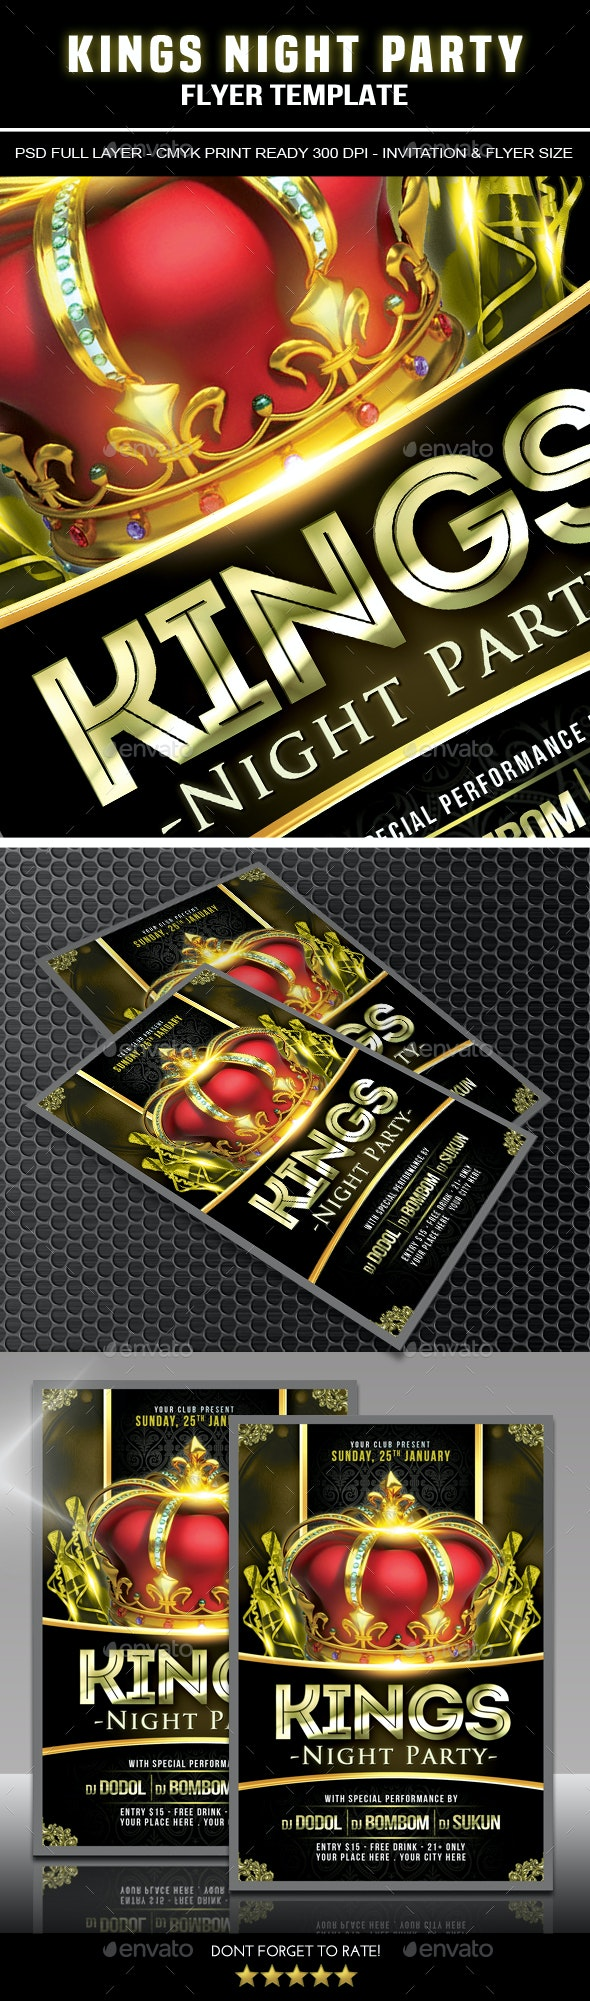 Kings Night Party Flyer - Clubs & Parties Events